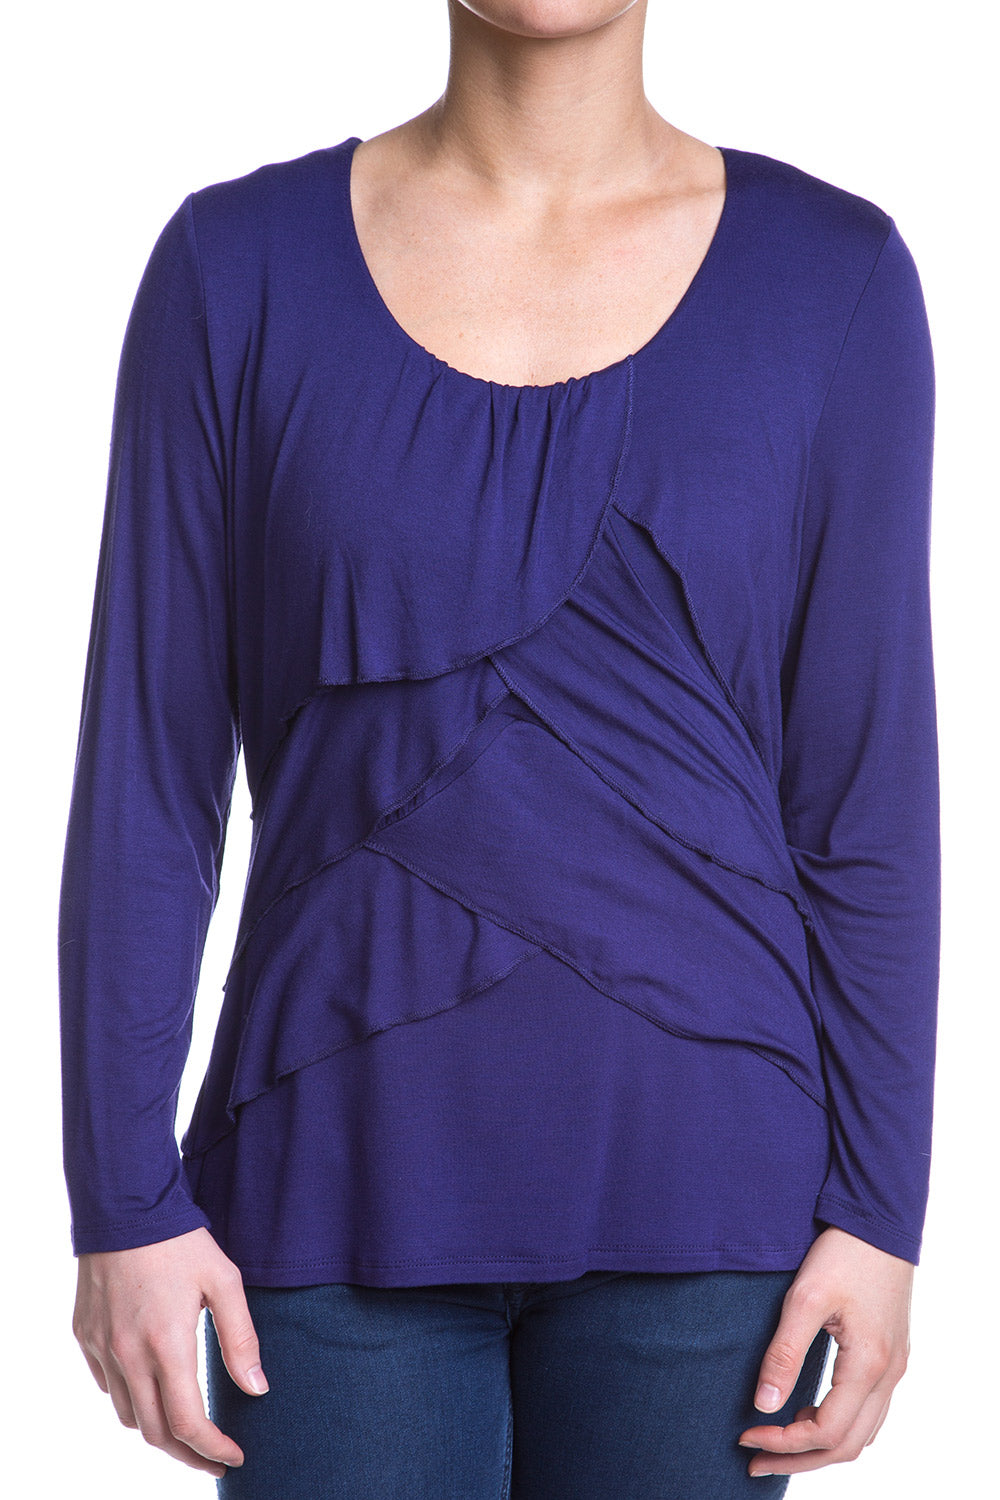 Type 2 Exposed Ruffle Top In Grape